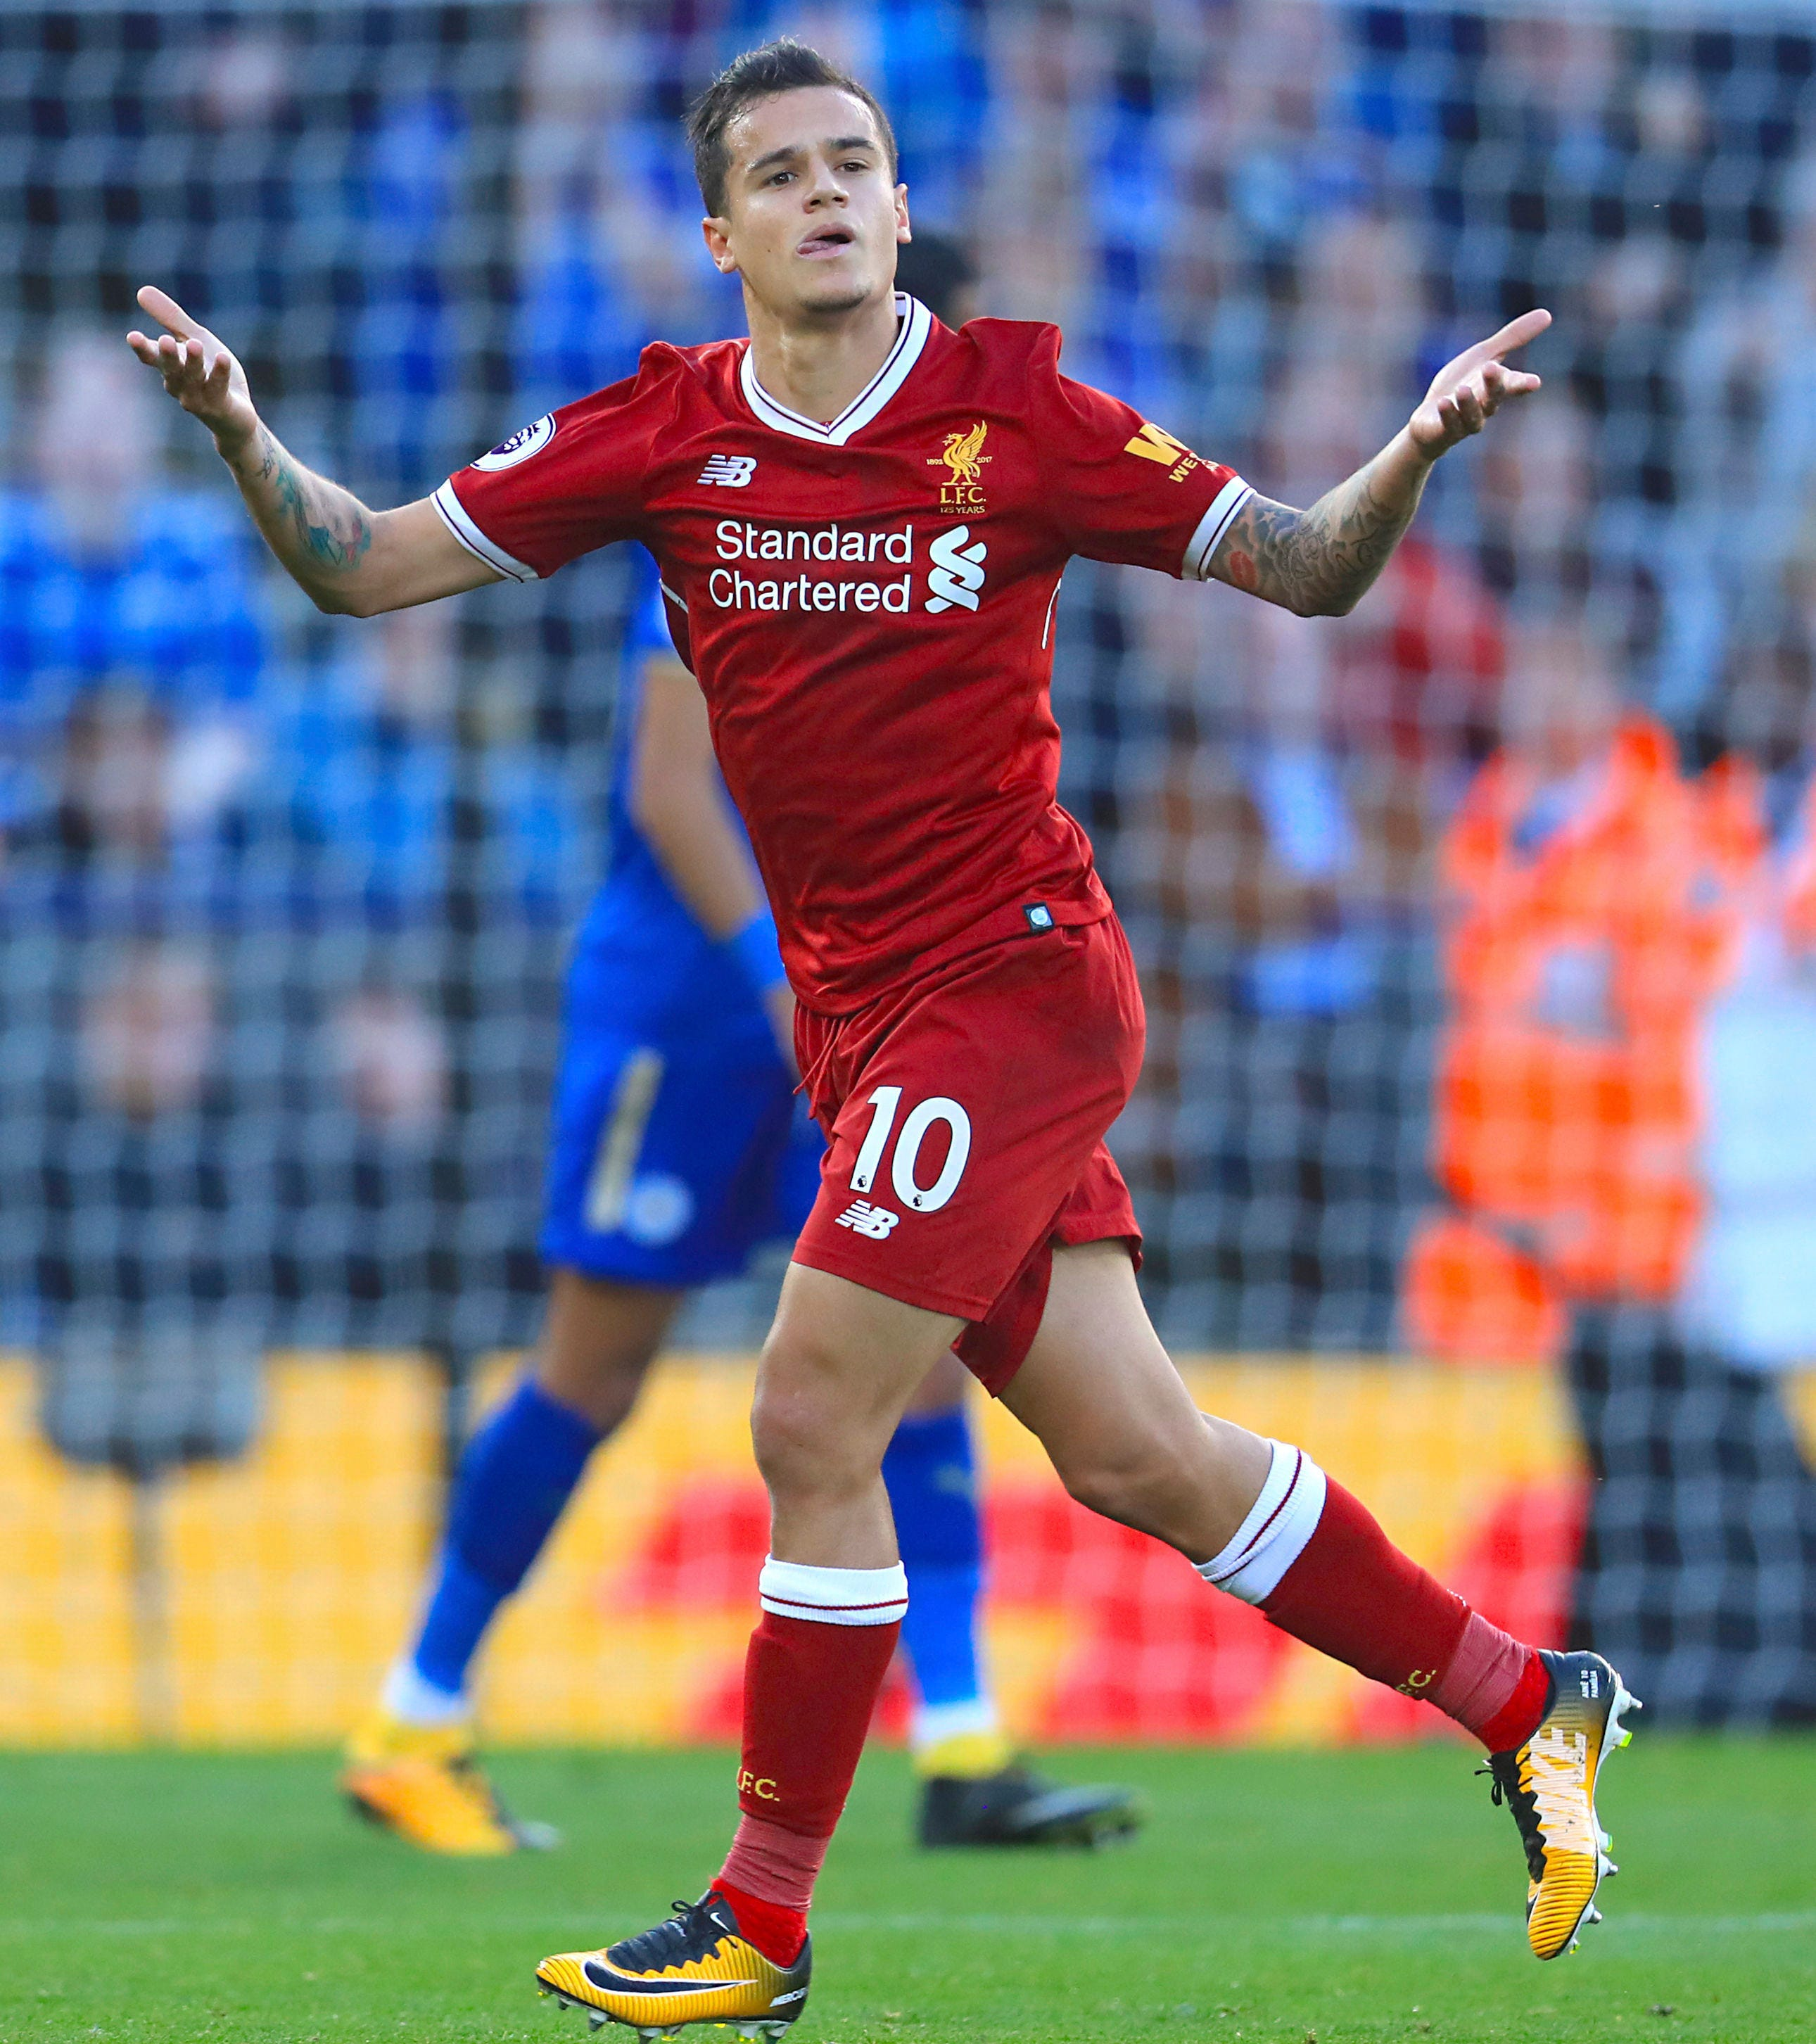 Coutinho returns to form as Liverpool wins at Leicester 3-2